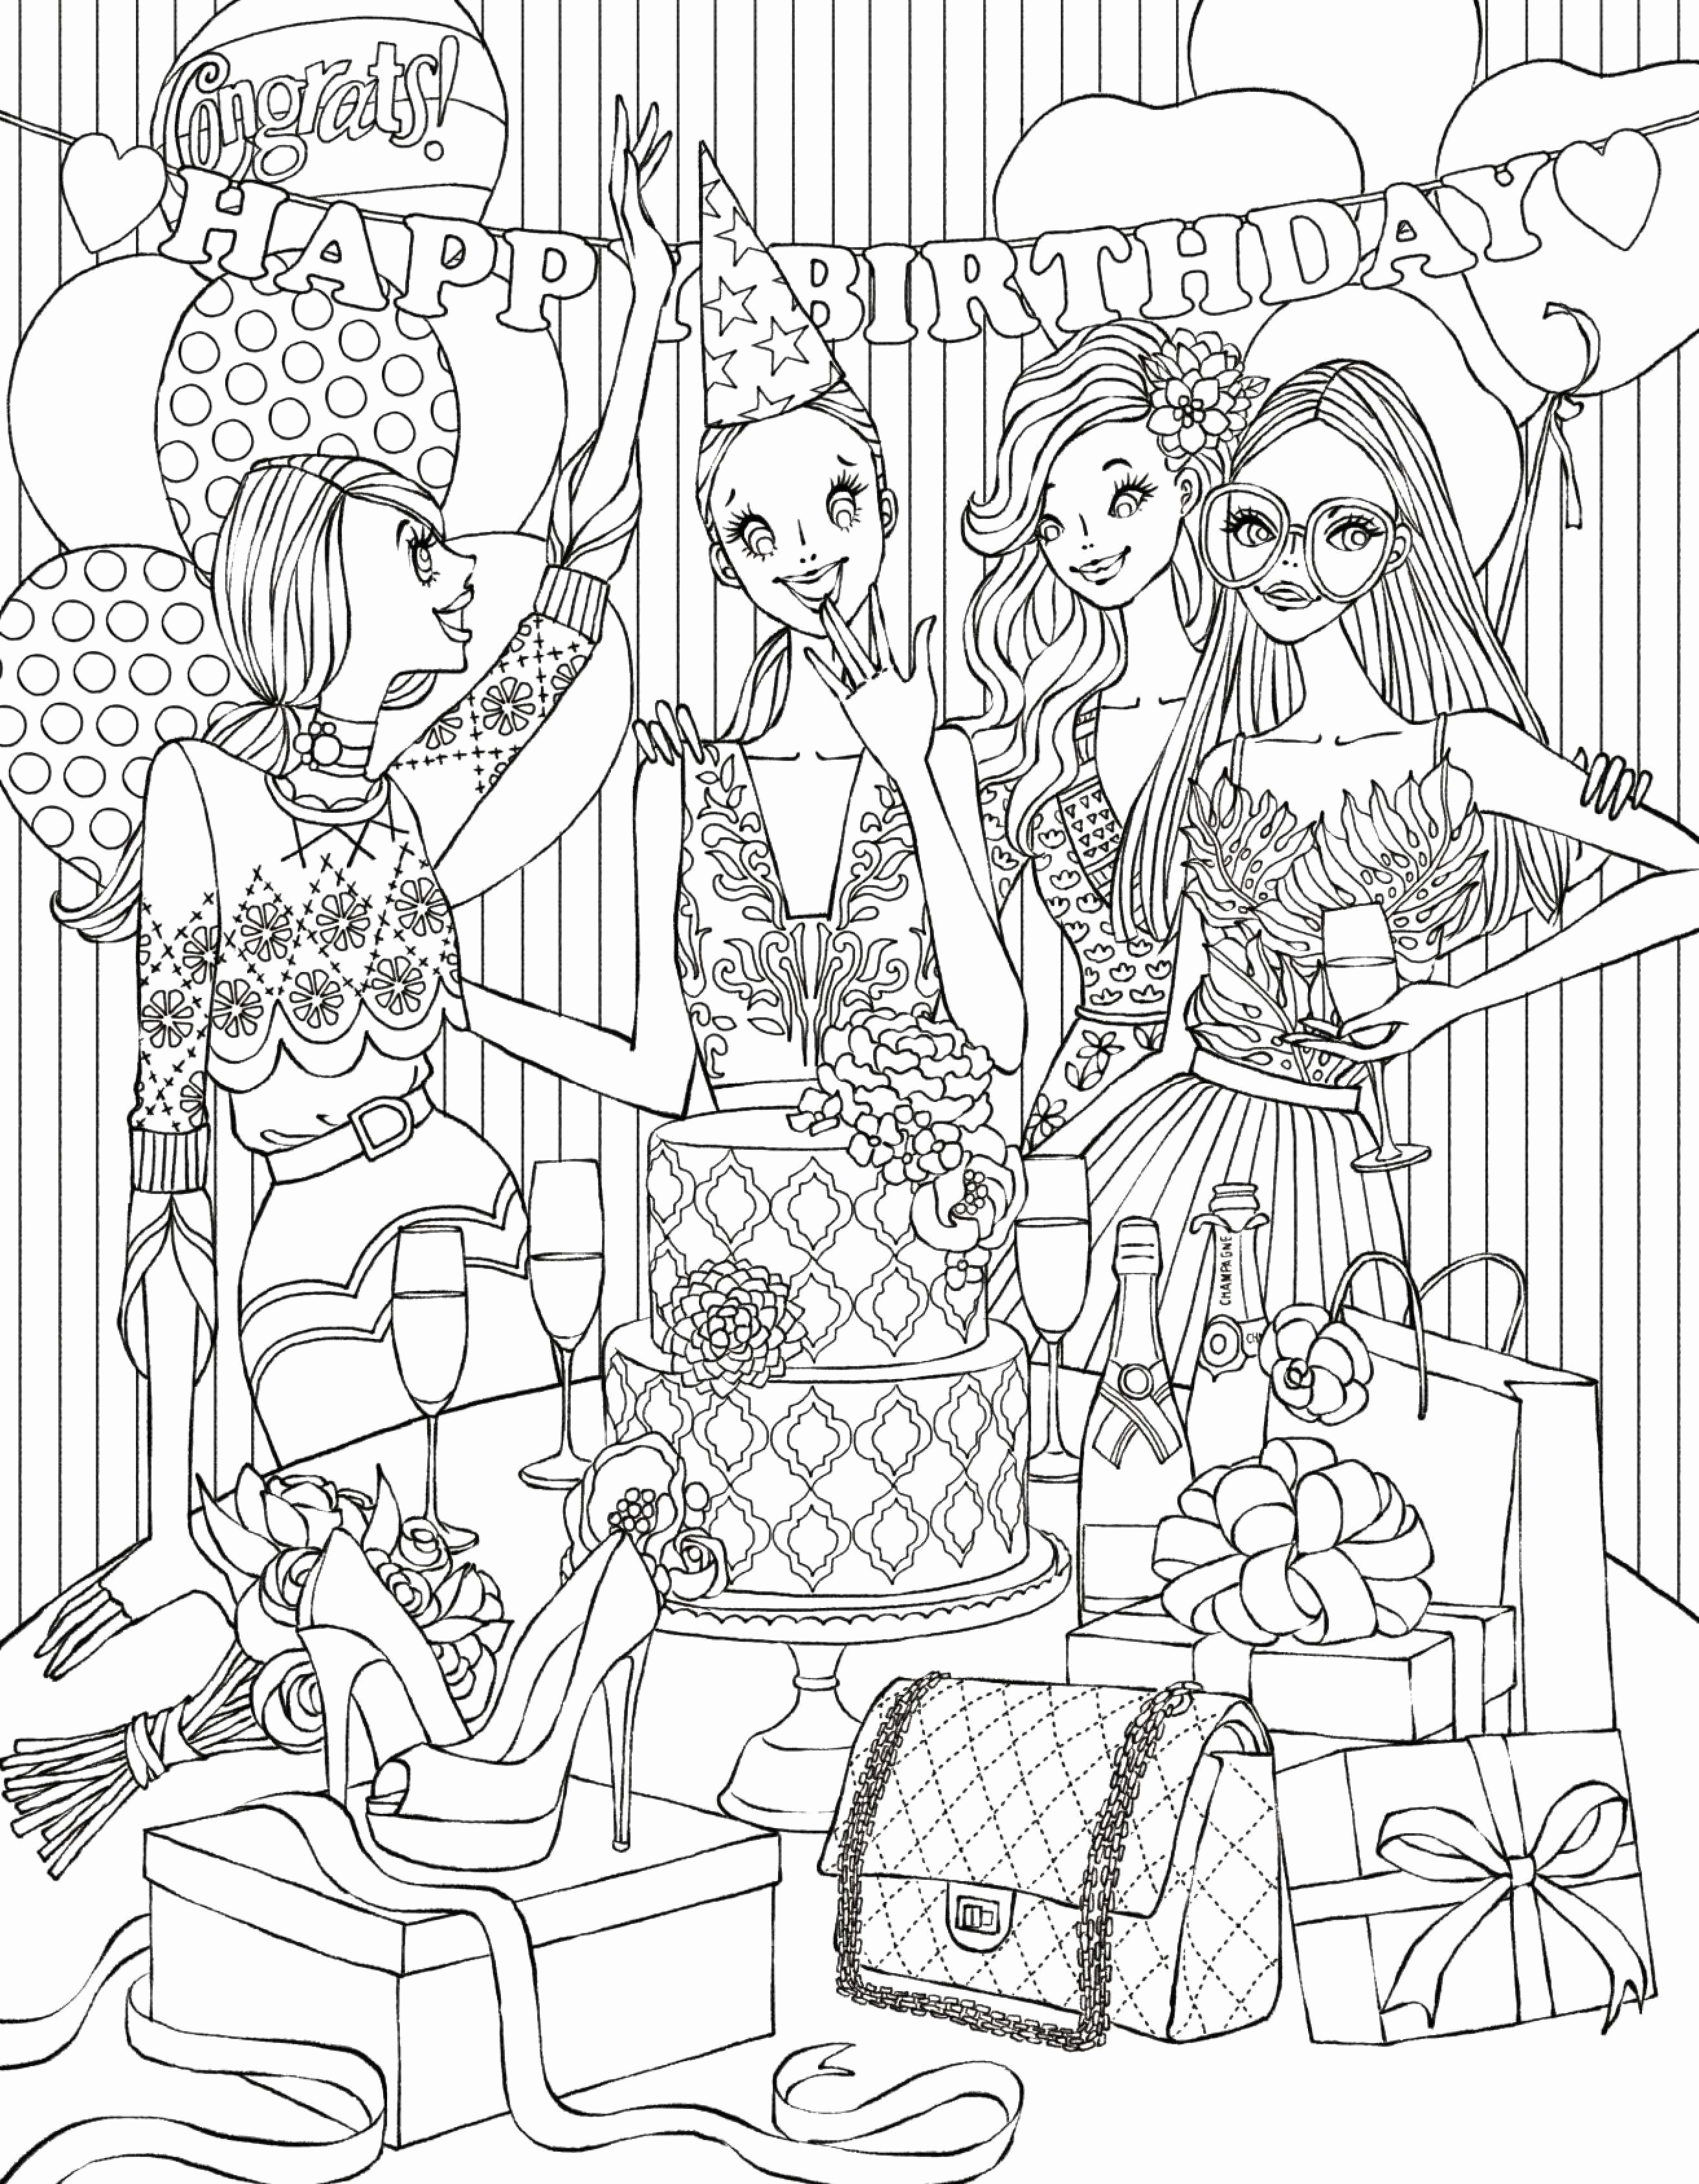 Piratenschiff Zum Ausmalen Schön Ausmalbilder Unicorn Einzigartig Unicorn and Princess Coloring Pages